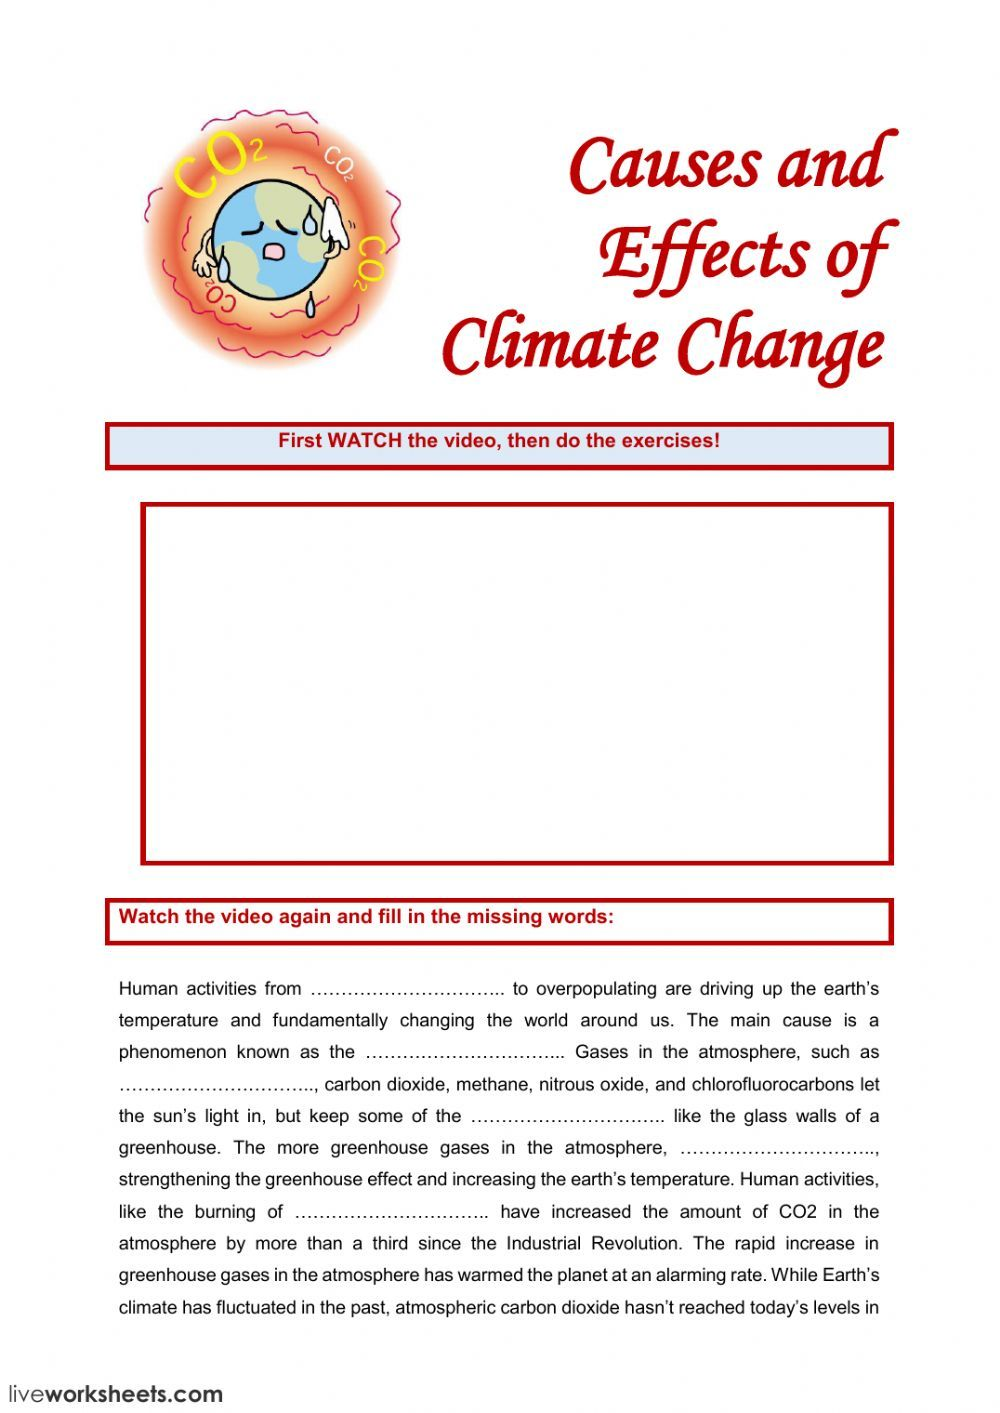 Listening Comprehension Interactive And Downloadable Worksheet You Can Do The Ex Climate Change Effects Climate Change Activities English As A Second Language [ 1413 x 1000 Pixel ]